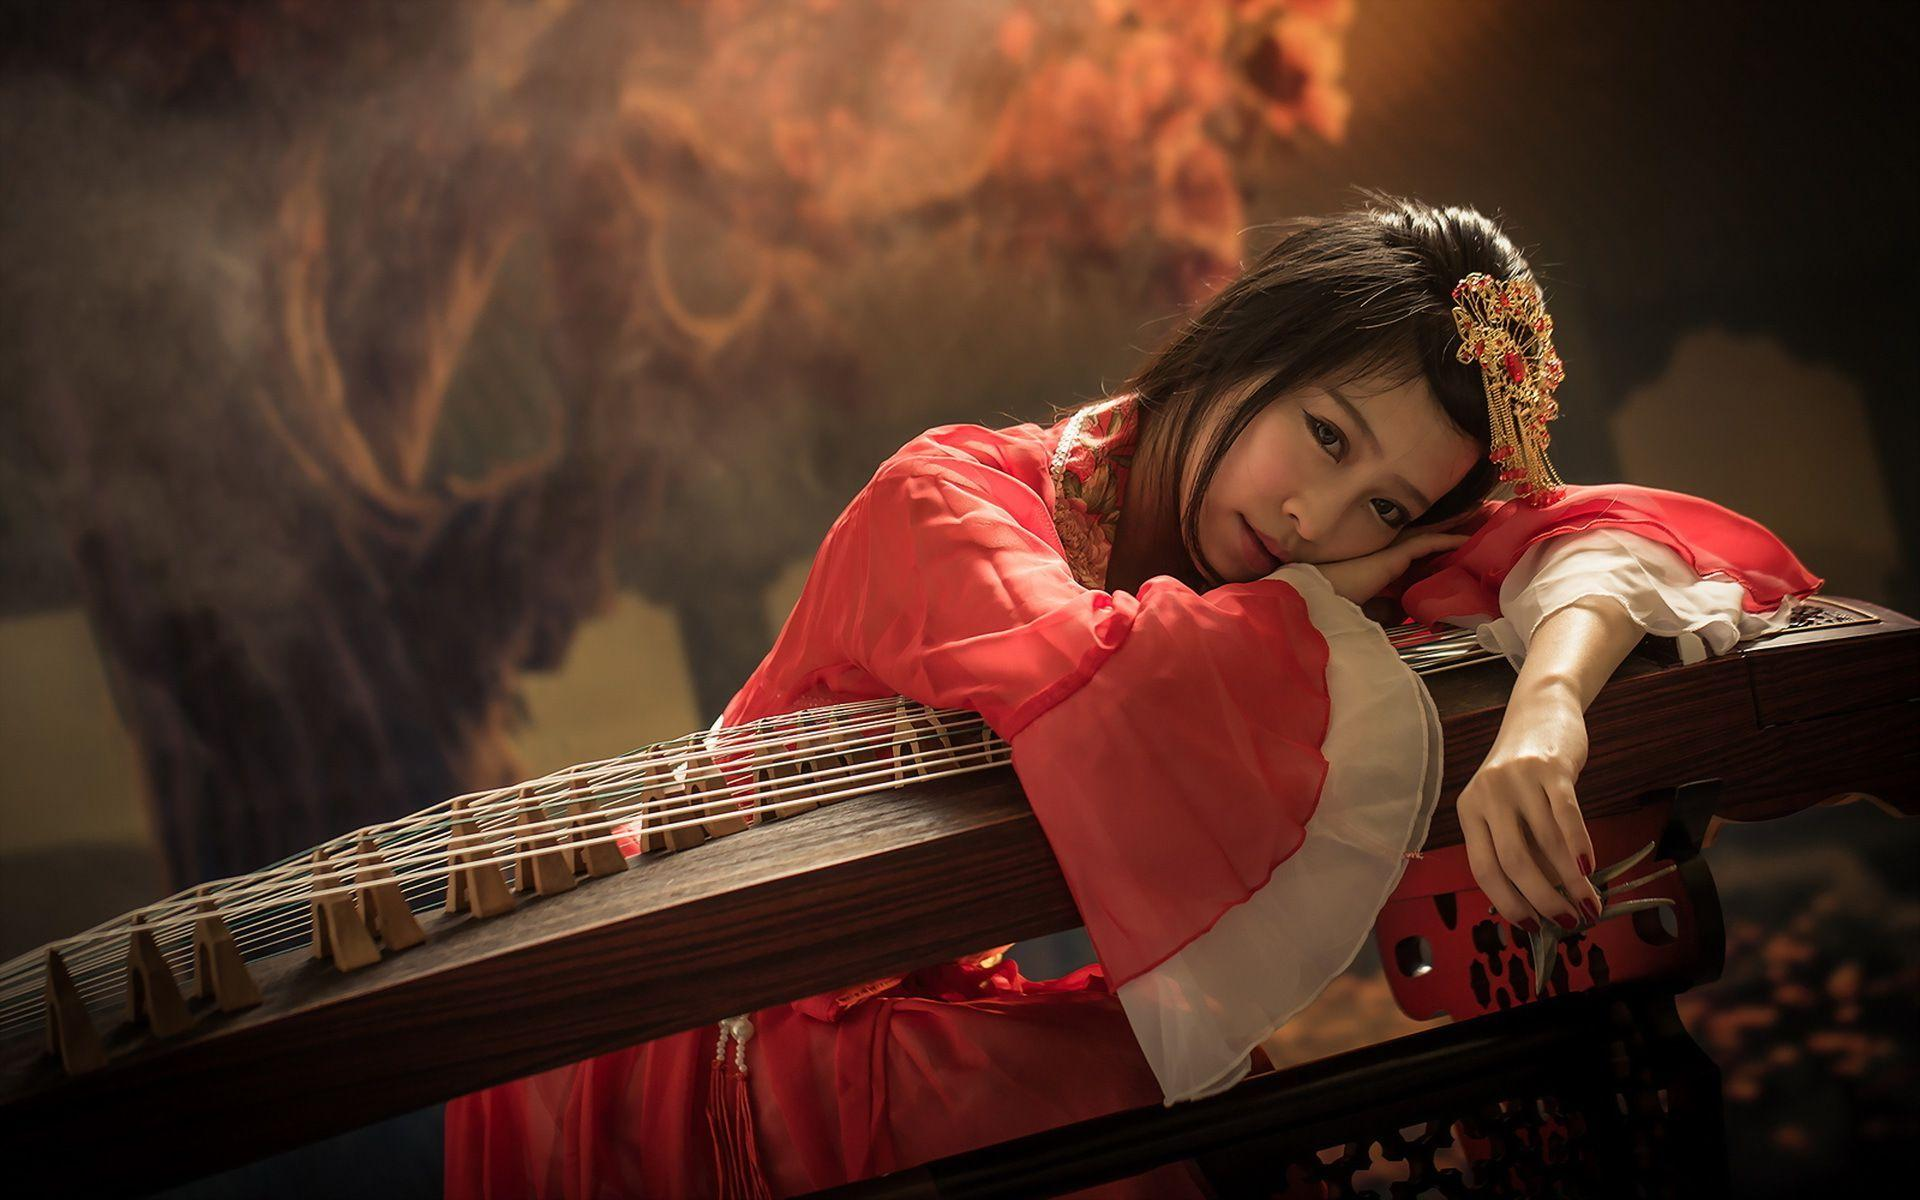 Geisha leaning on the instrument HD desktop wallpaper 1920x1200